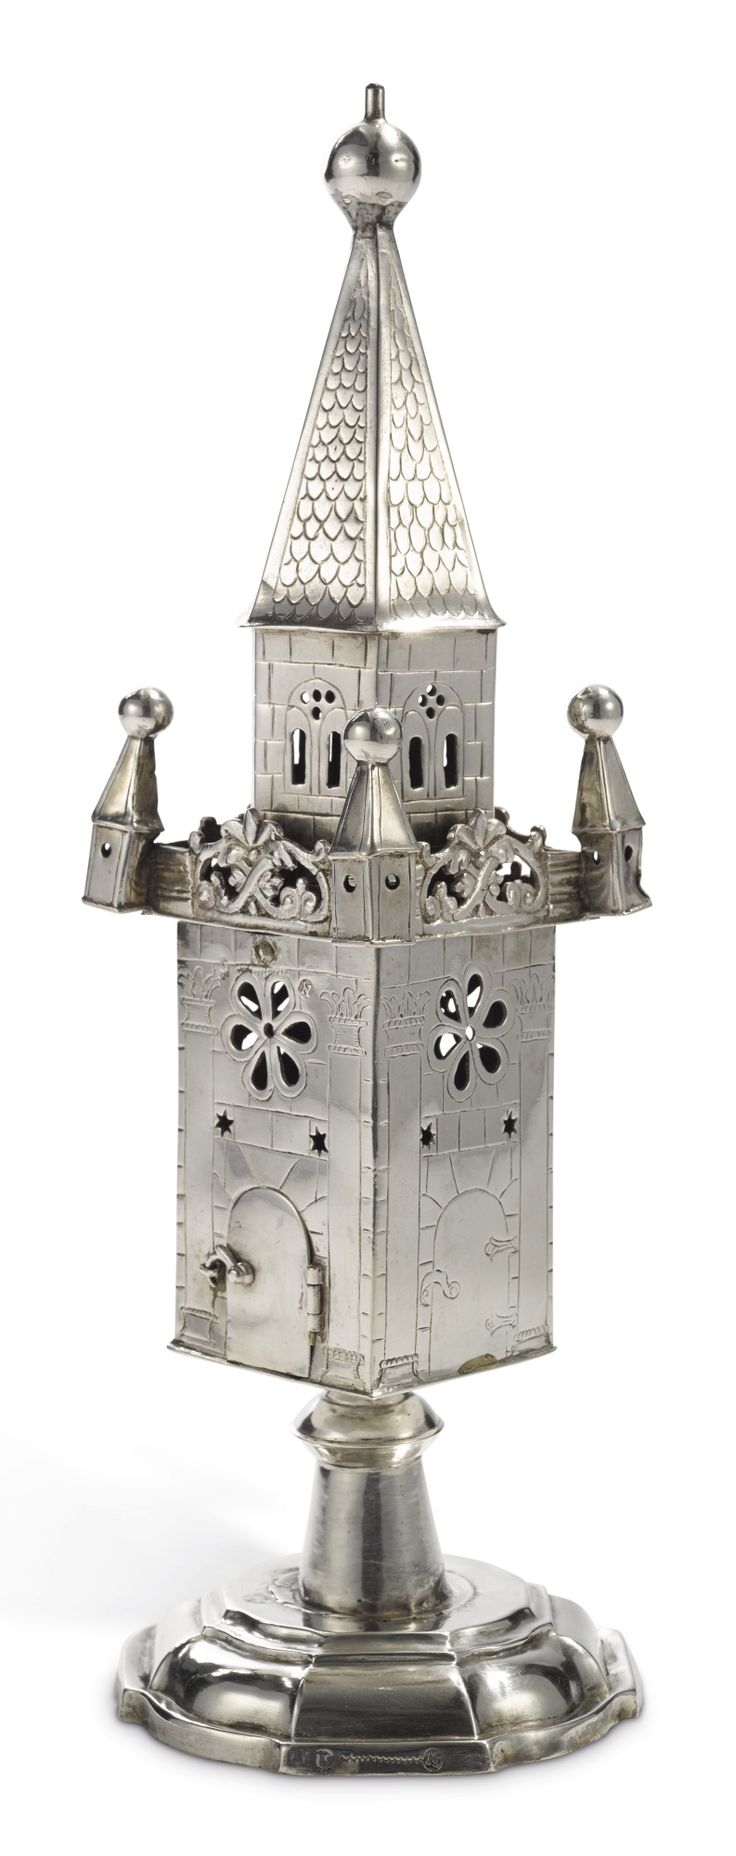 German silver large spice tower, Martin Carl Hanias, gen. Dublon, Nuremberg, circa 1730-40 -  each side of the central section engraved with brickwork and pillars enclosing a door or simulated door, pierced with stars and a rosette,  surmounted by a gallery with four turrets at the corners and a hexagonal pierced and engraved spire, set on stepped base, marked on base, body and spine, each with maker's mark and town mark. height 11 1/2 in . 29.2 cm.